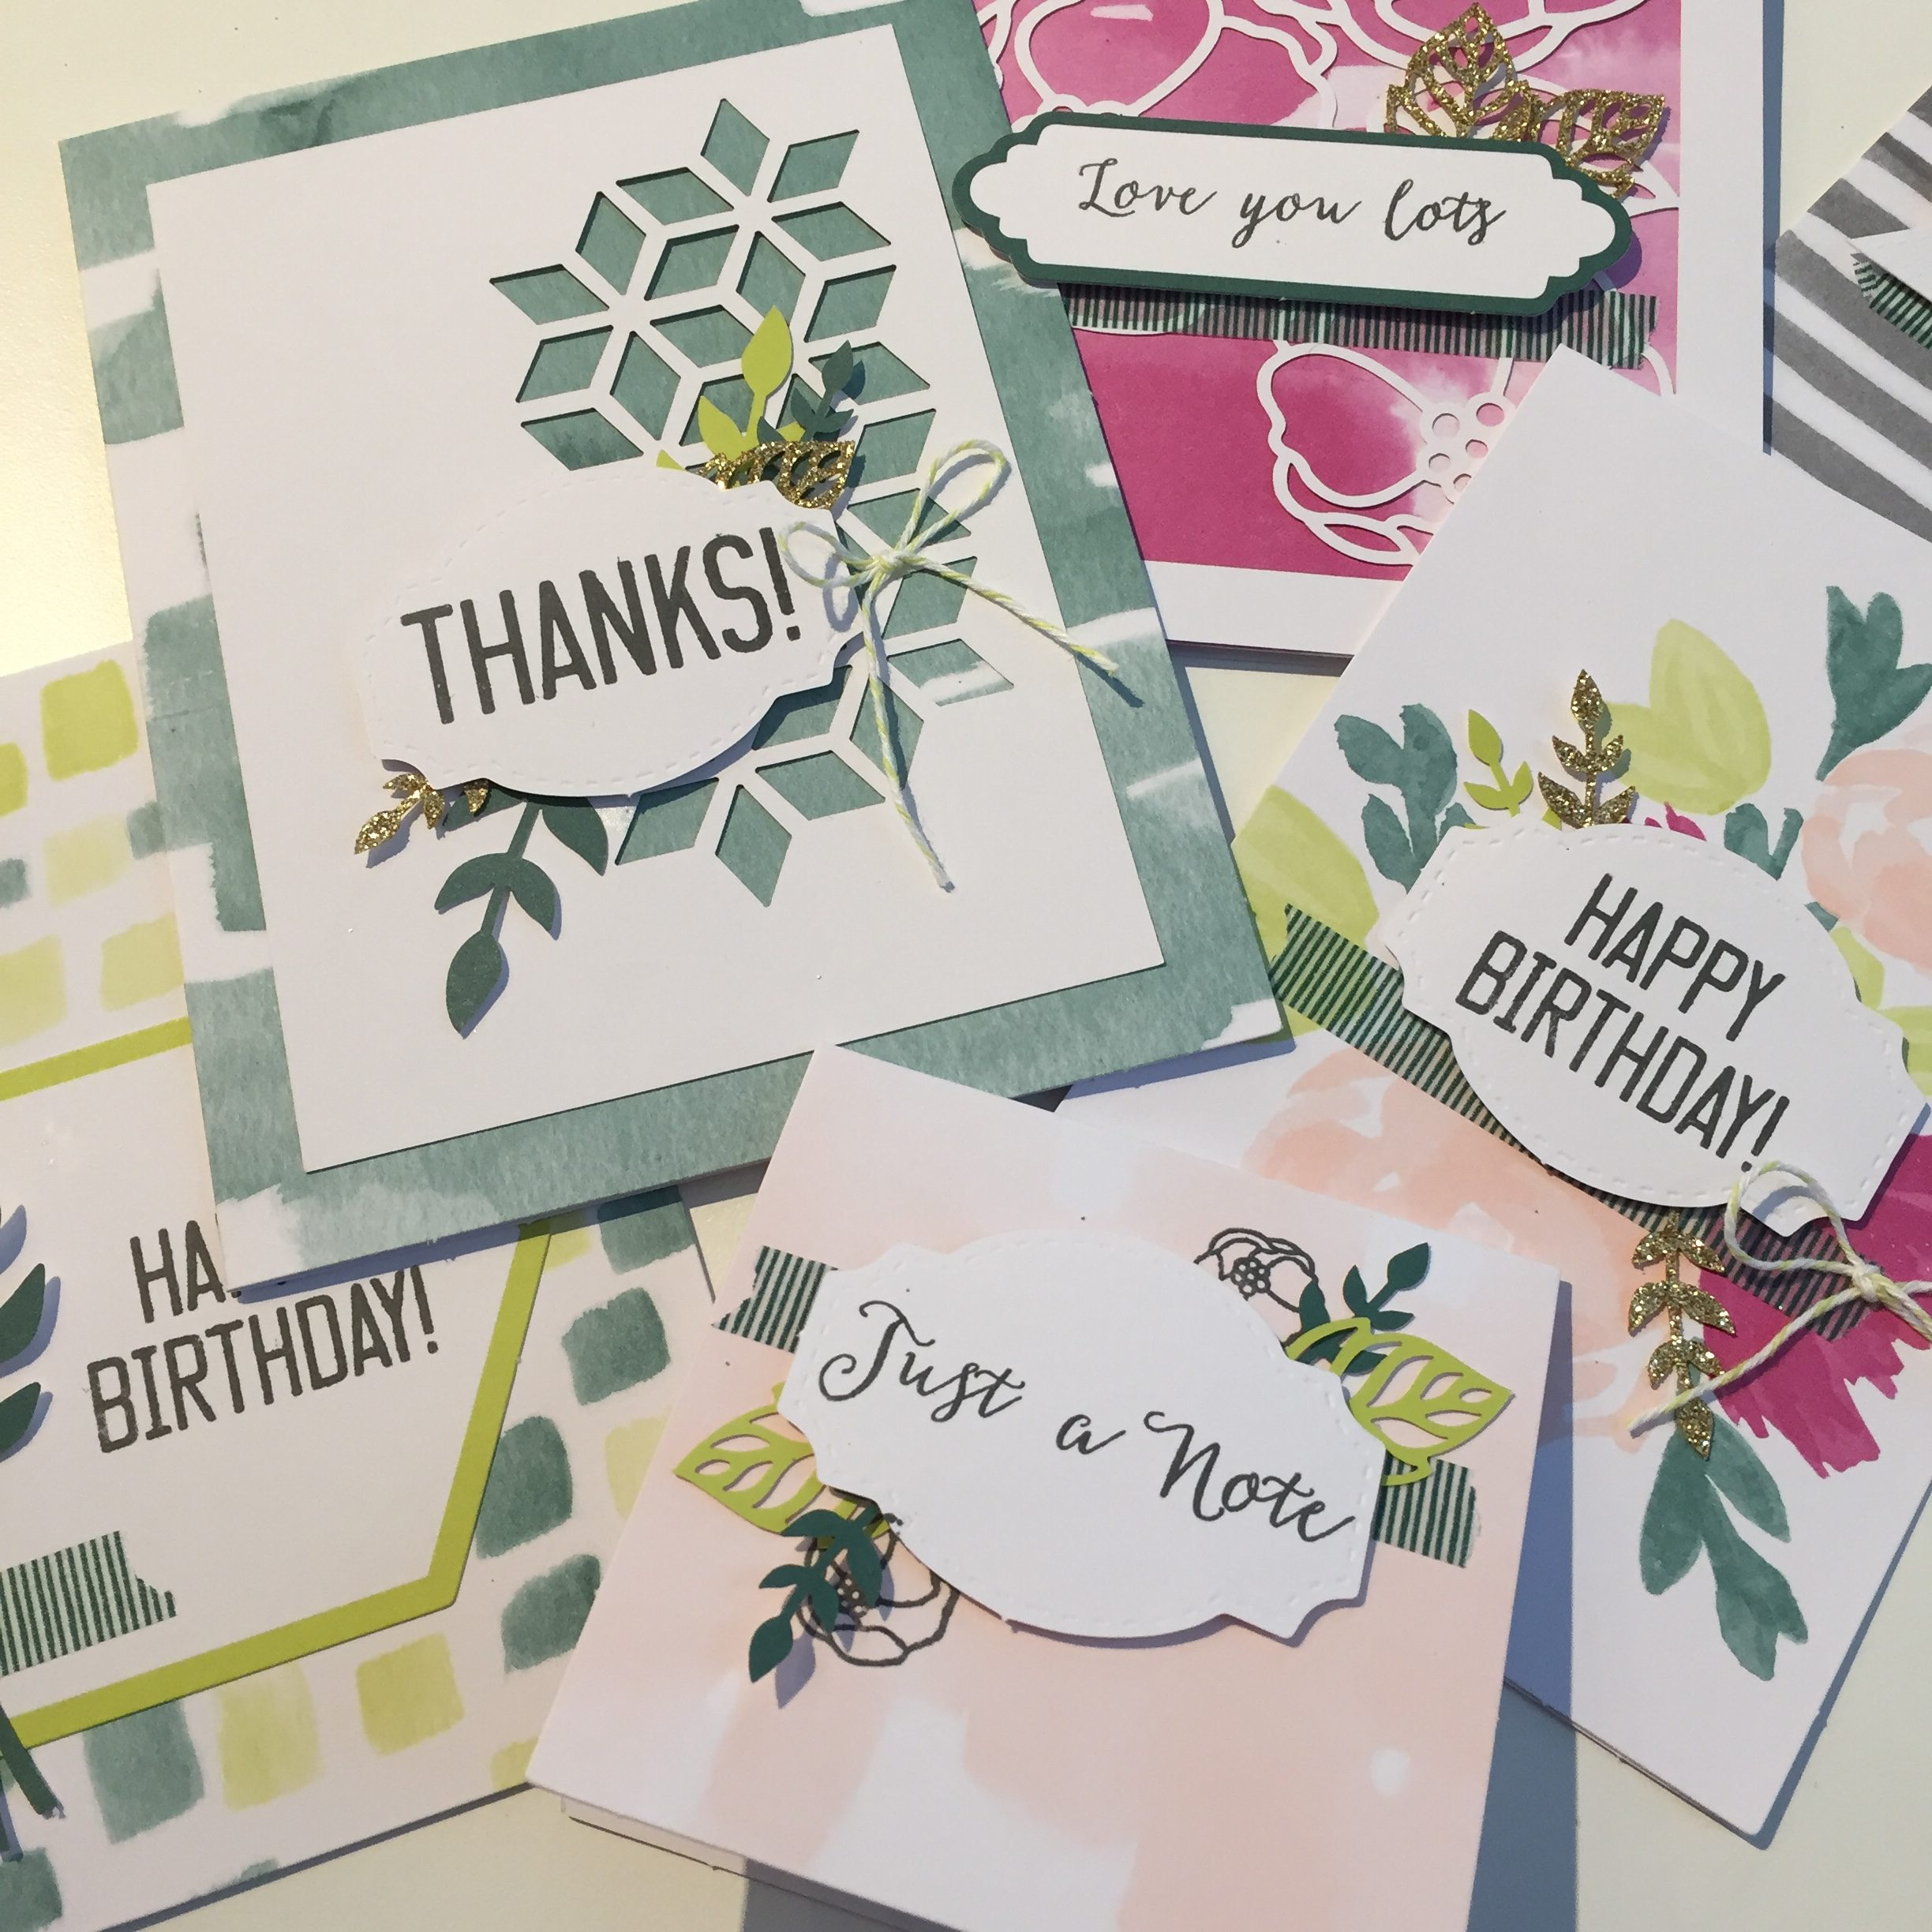 Cards from the Soft Sayings card kit